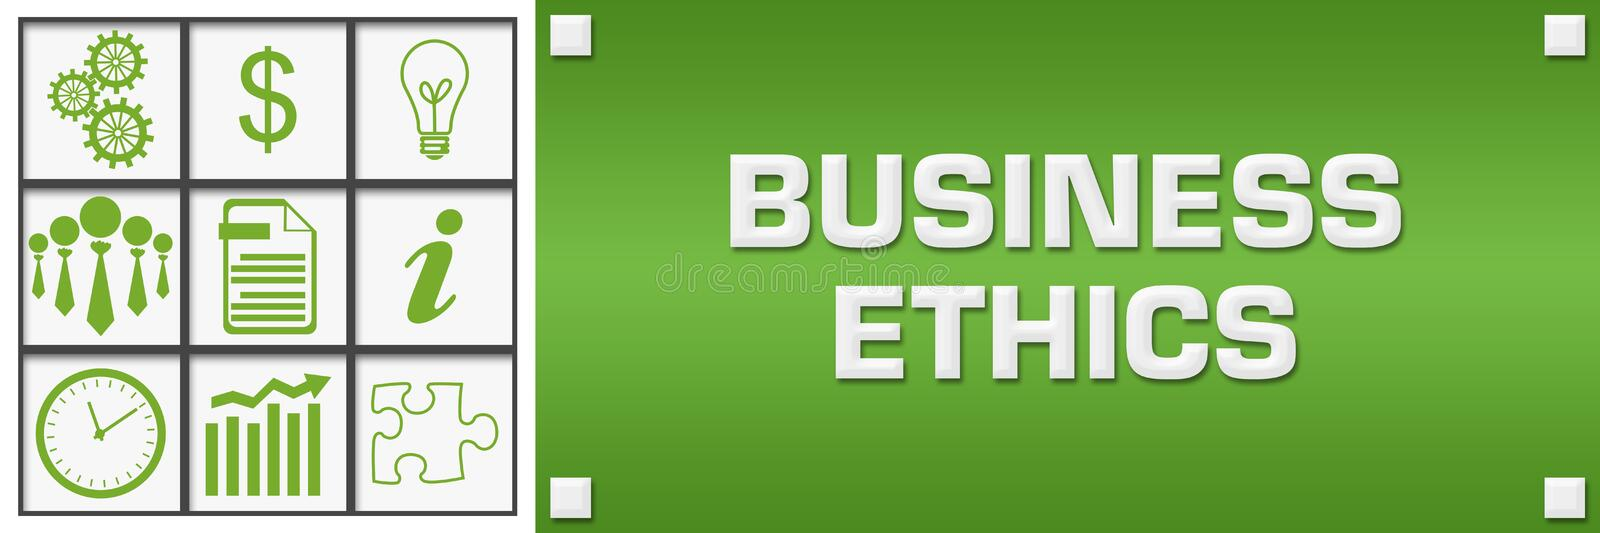 Business Ethics Green Business Symbols Grid Left. Business ethics concept image with text and related symbols vector illustration